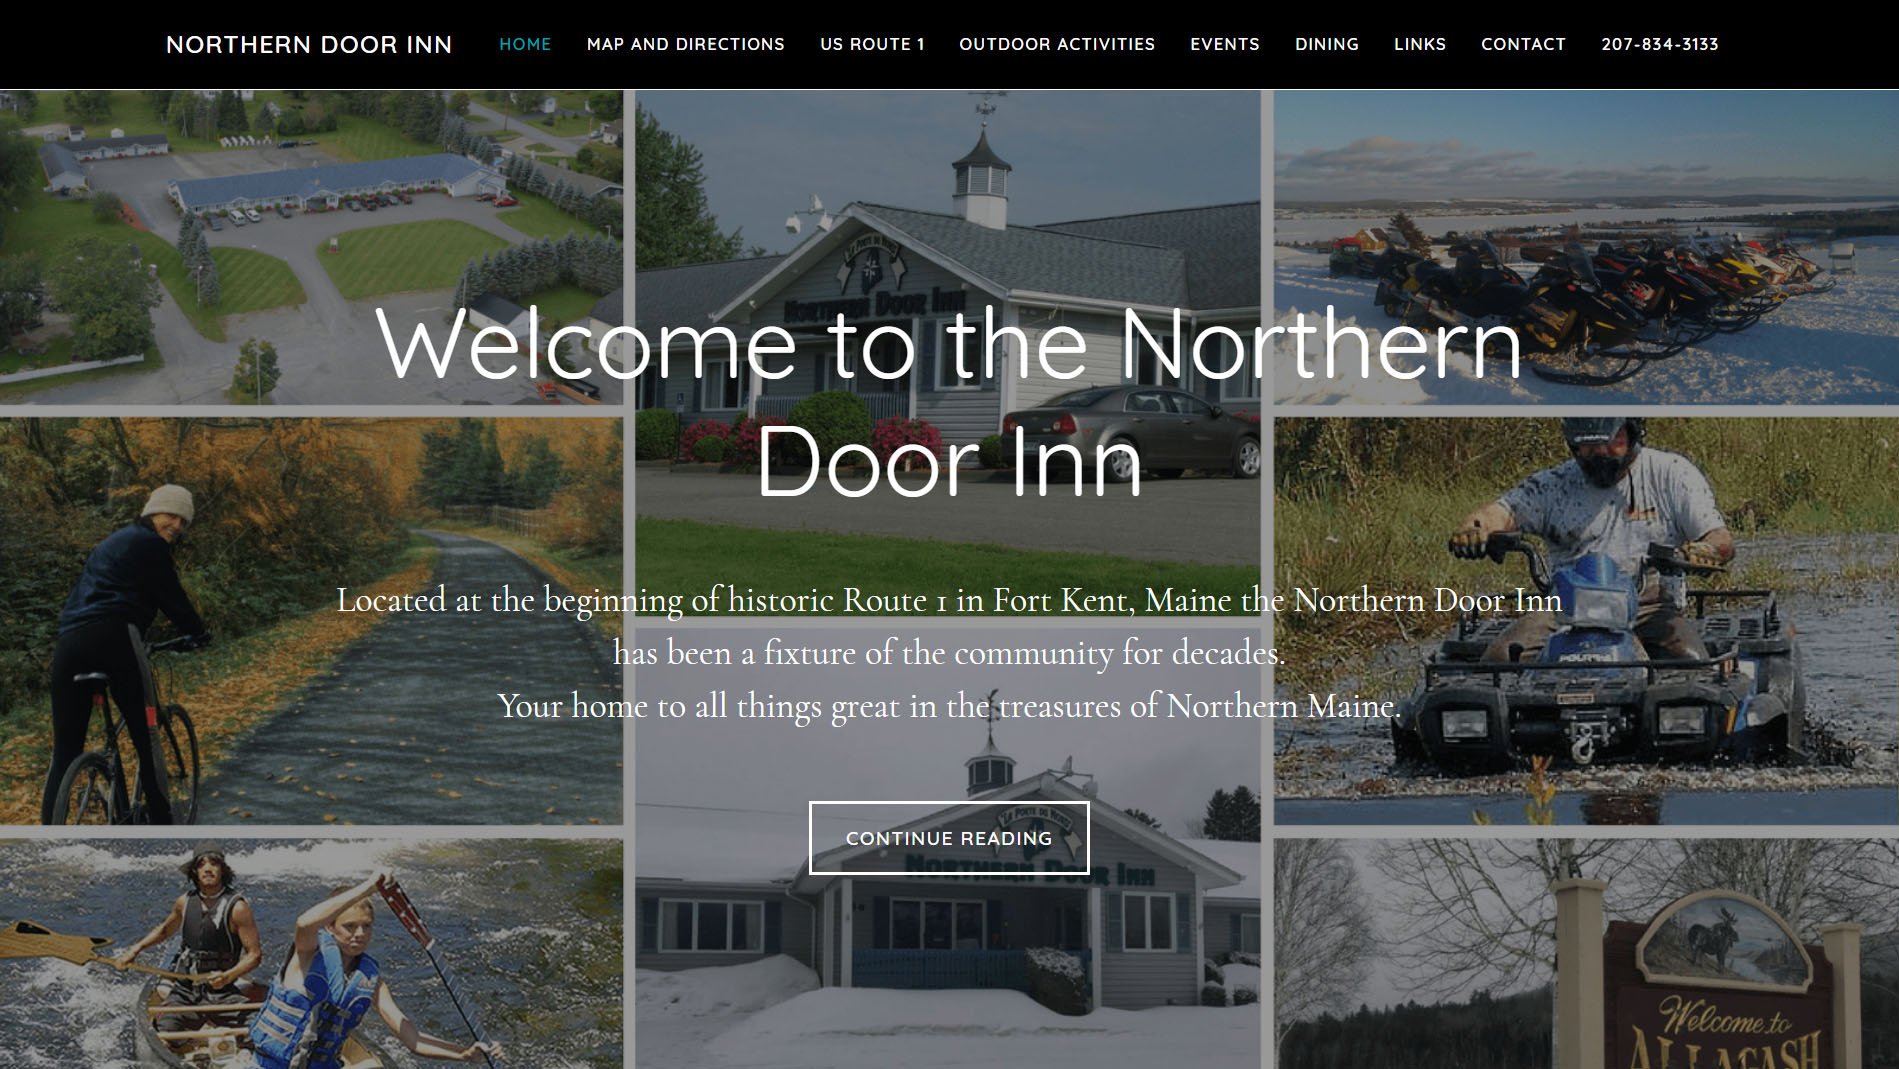 Northern Door Inn